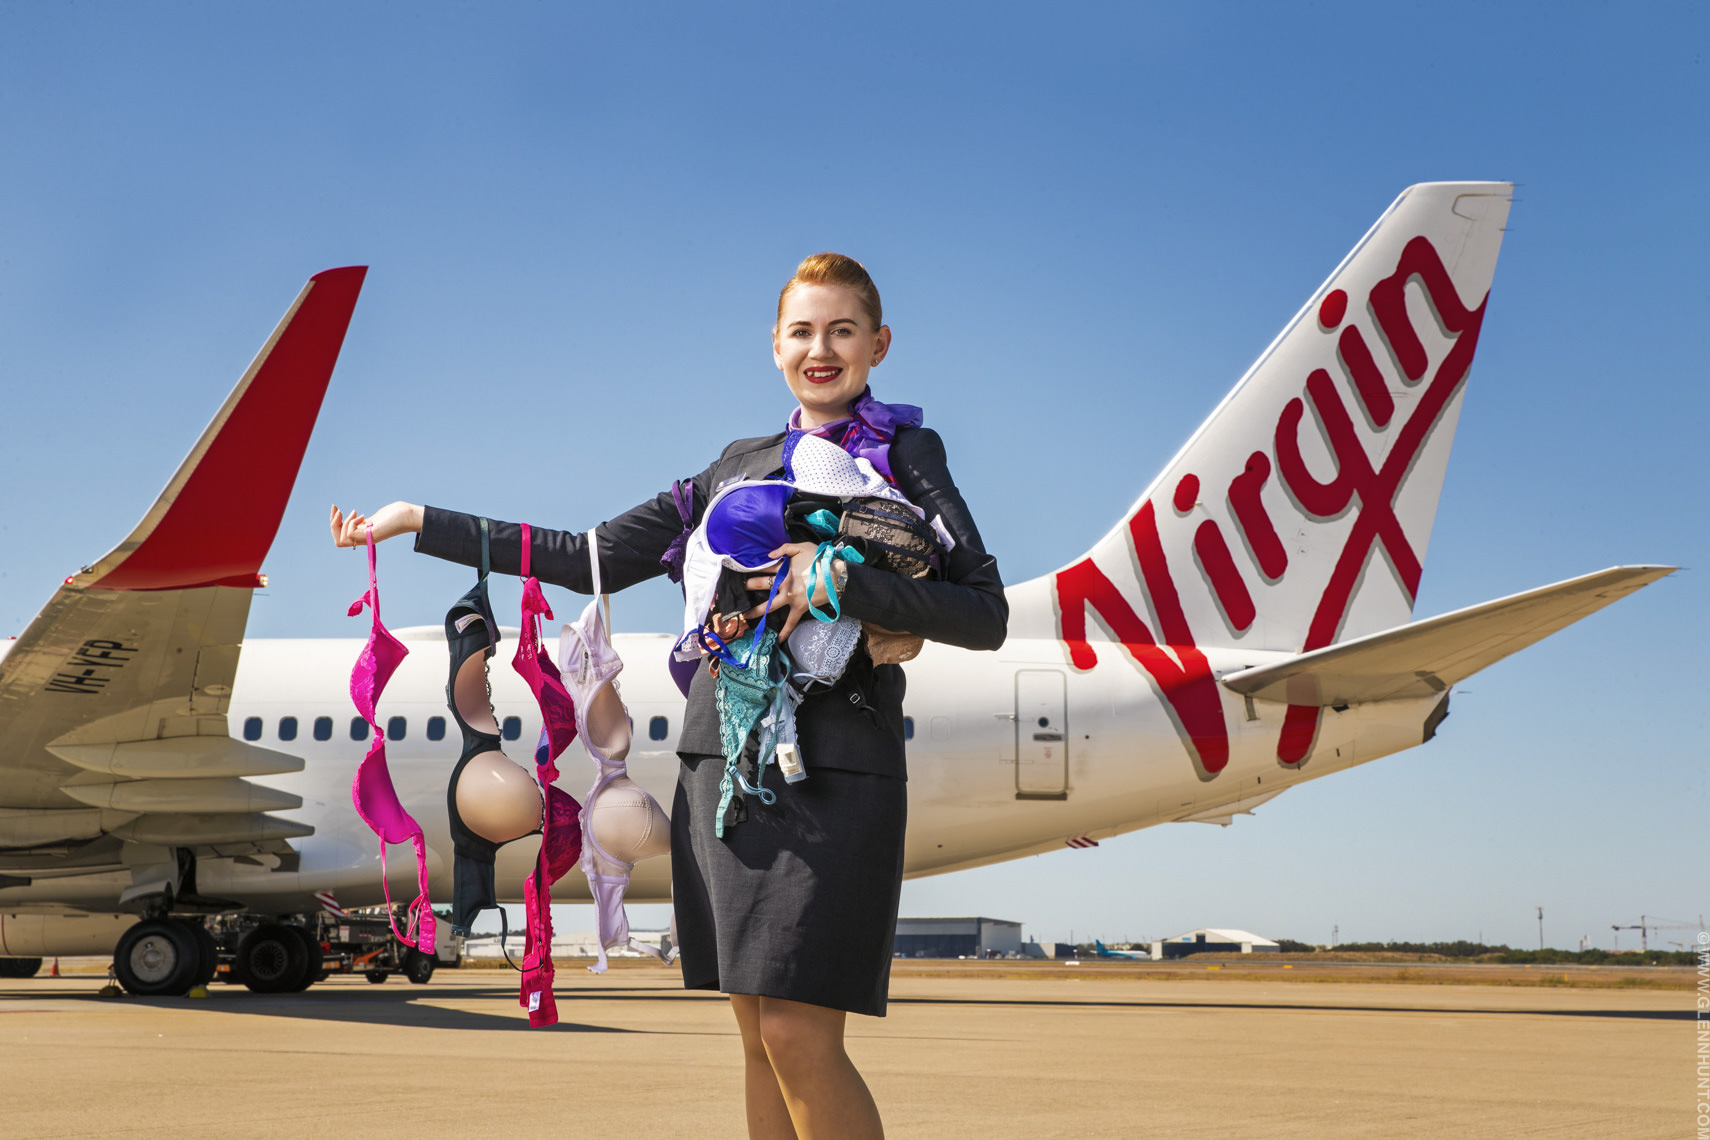 Virgin Australia Photography